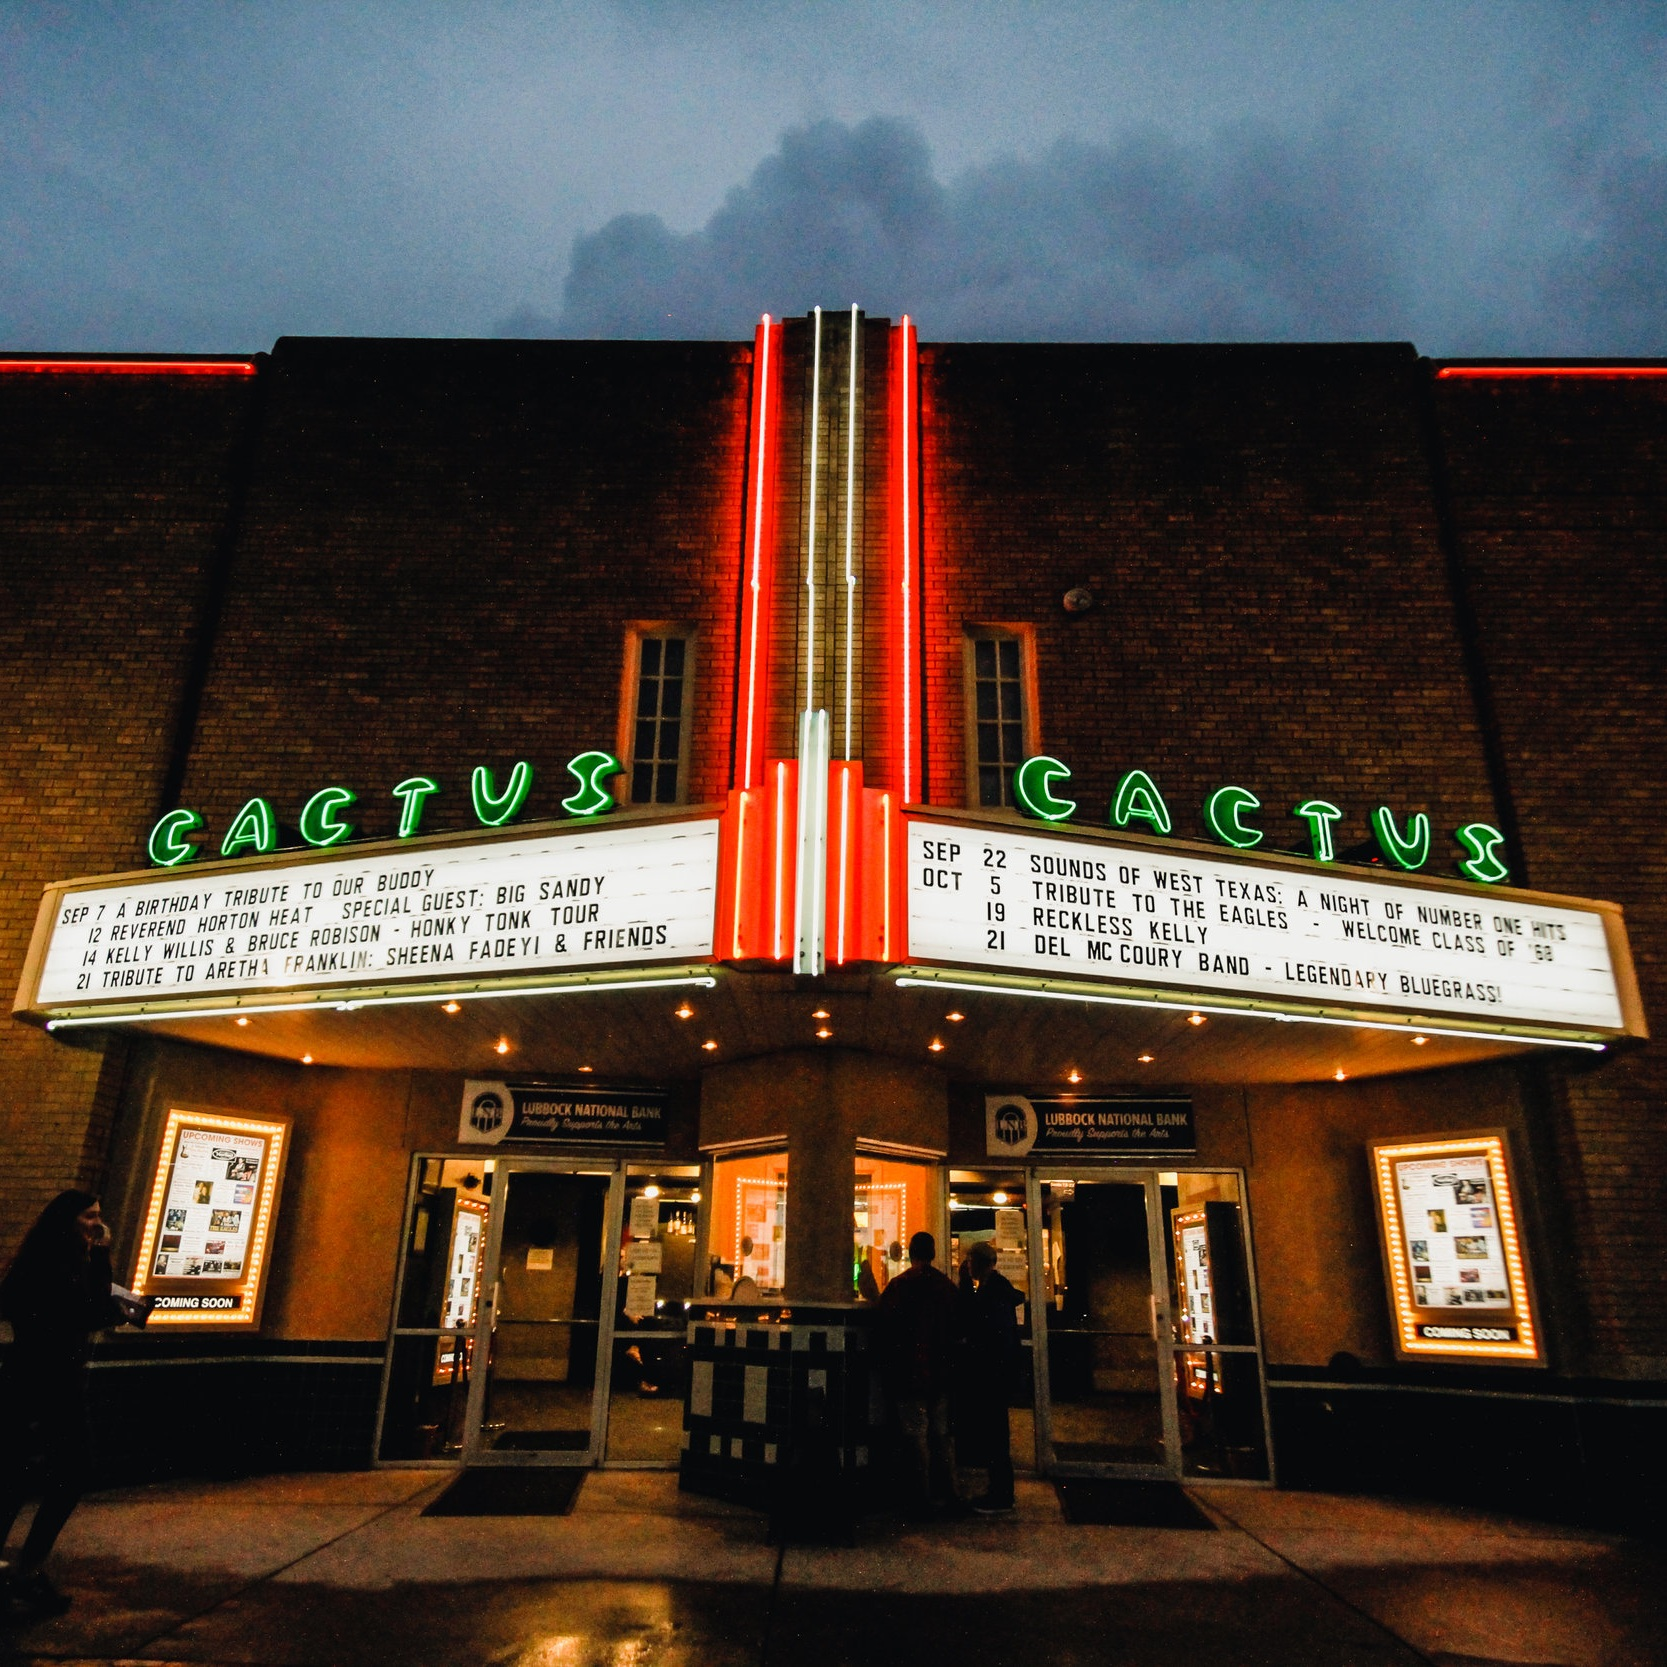 Cactus Theater   - 10% Discount on Tickets